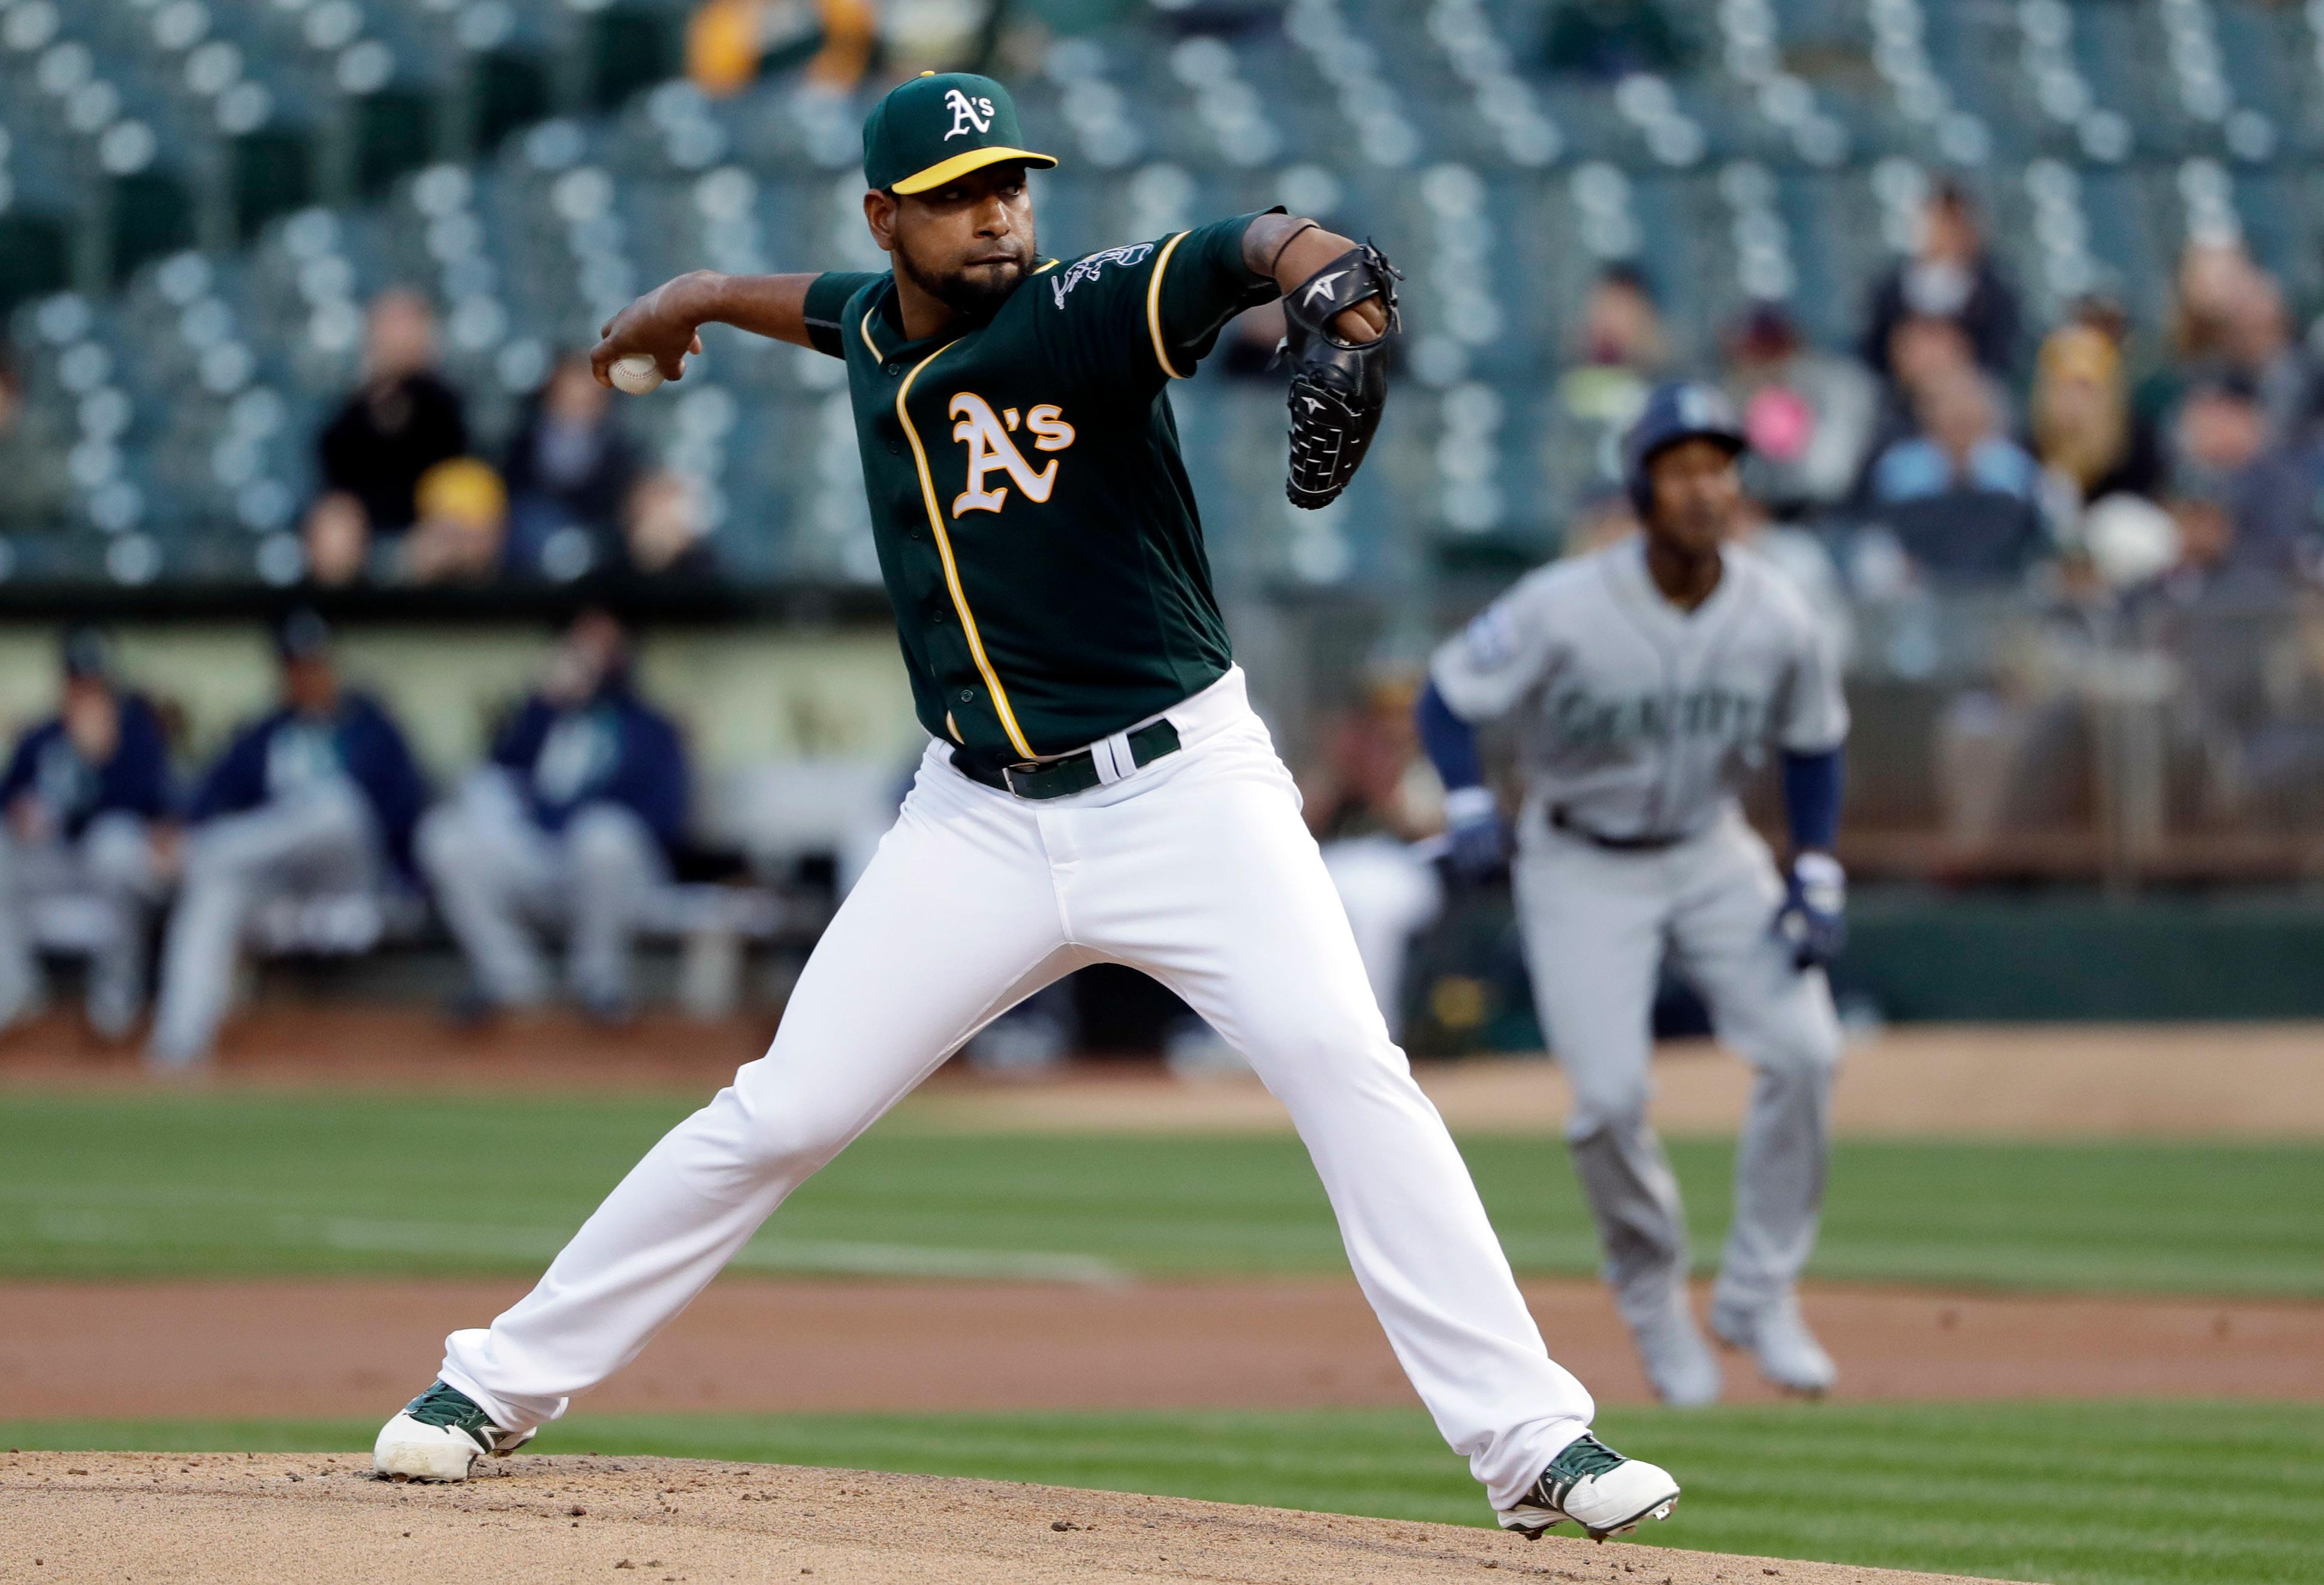 Oakland Athletics starting pitcher Cesar Valdez throws to the Seattle Mariners during the first inning of a baseball game Thursday, April 20, 2017, in Oakland, Calif. (AP Photo/Marcio Jose Sanchez)